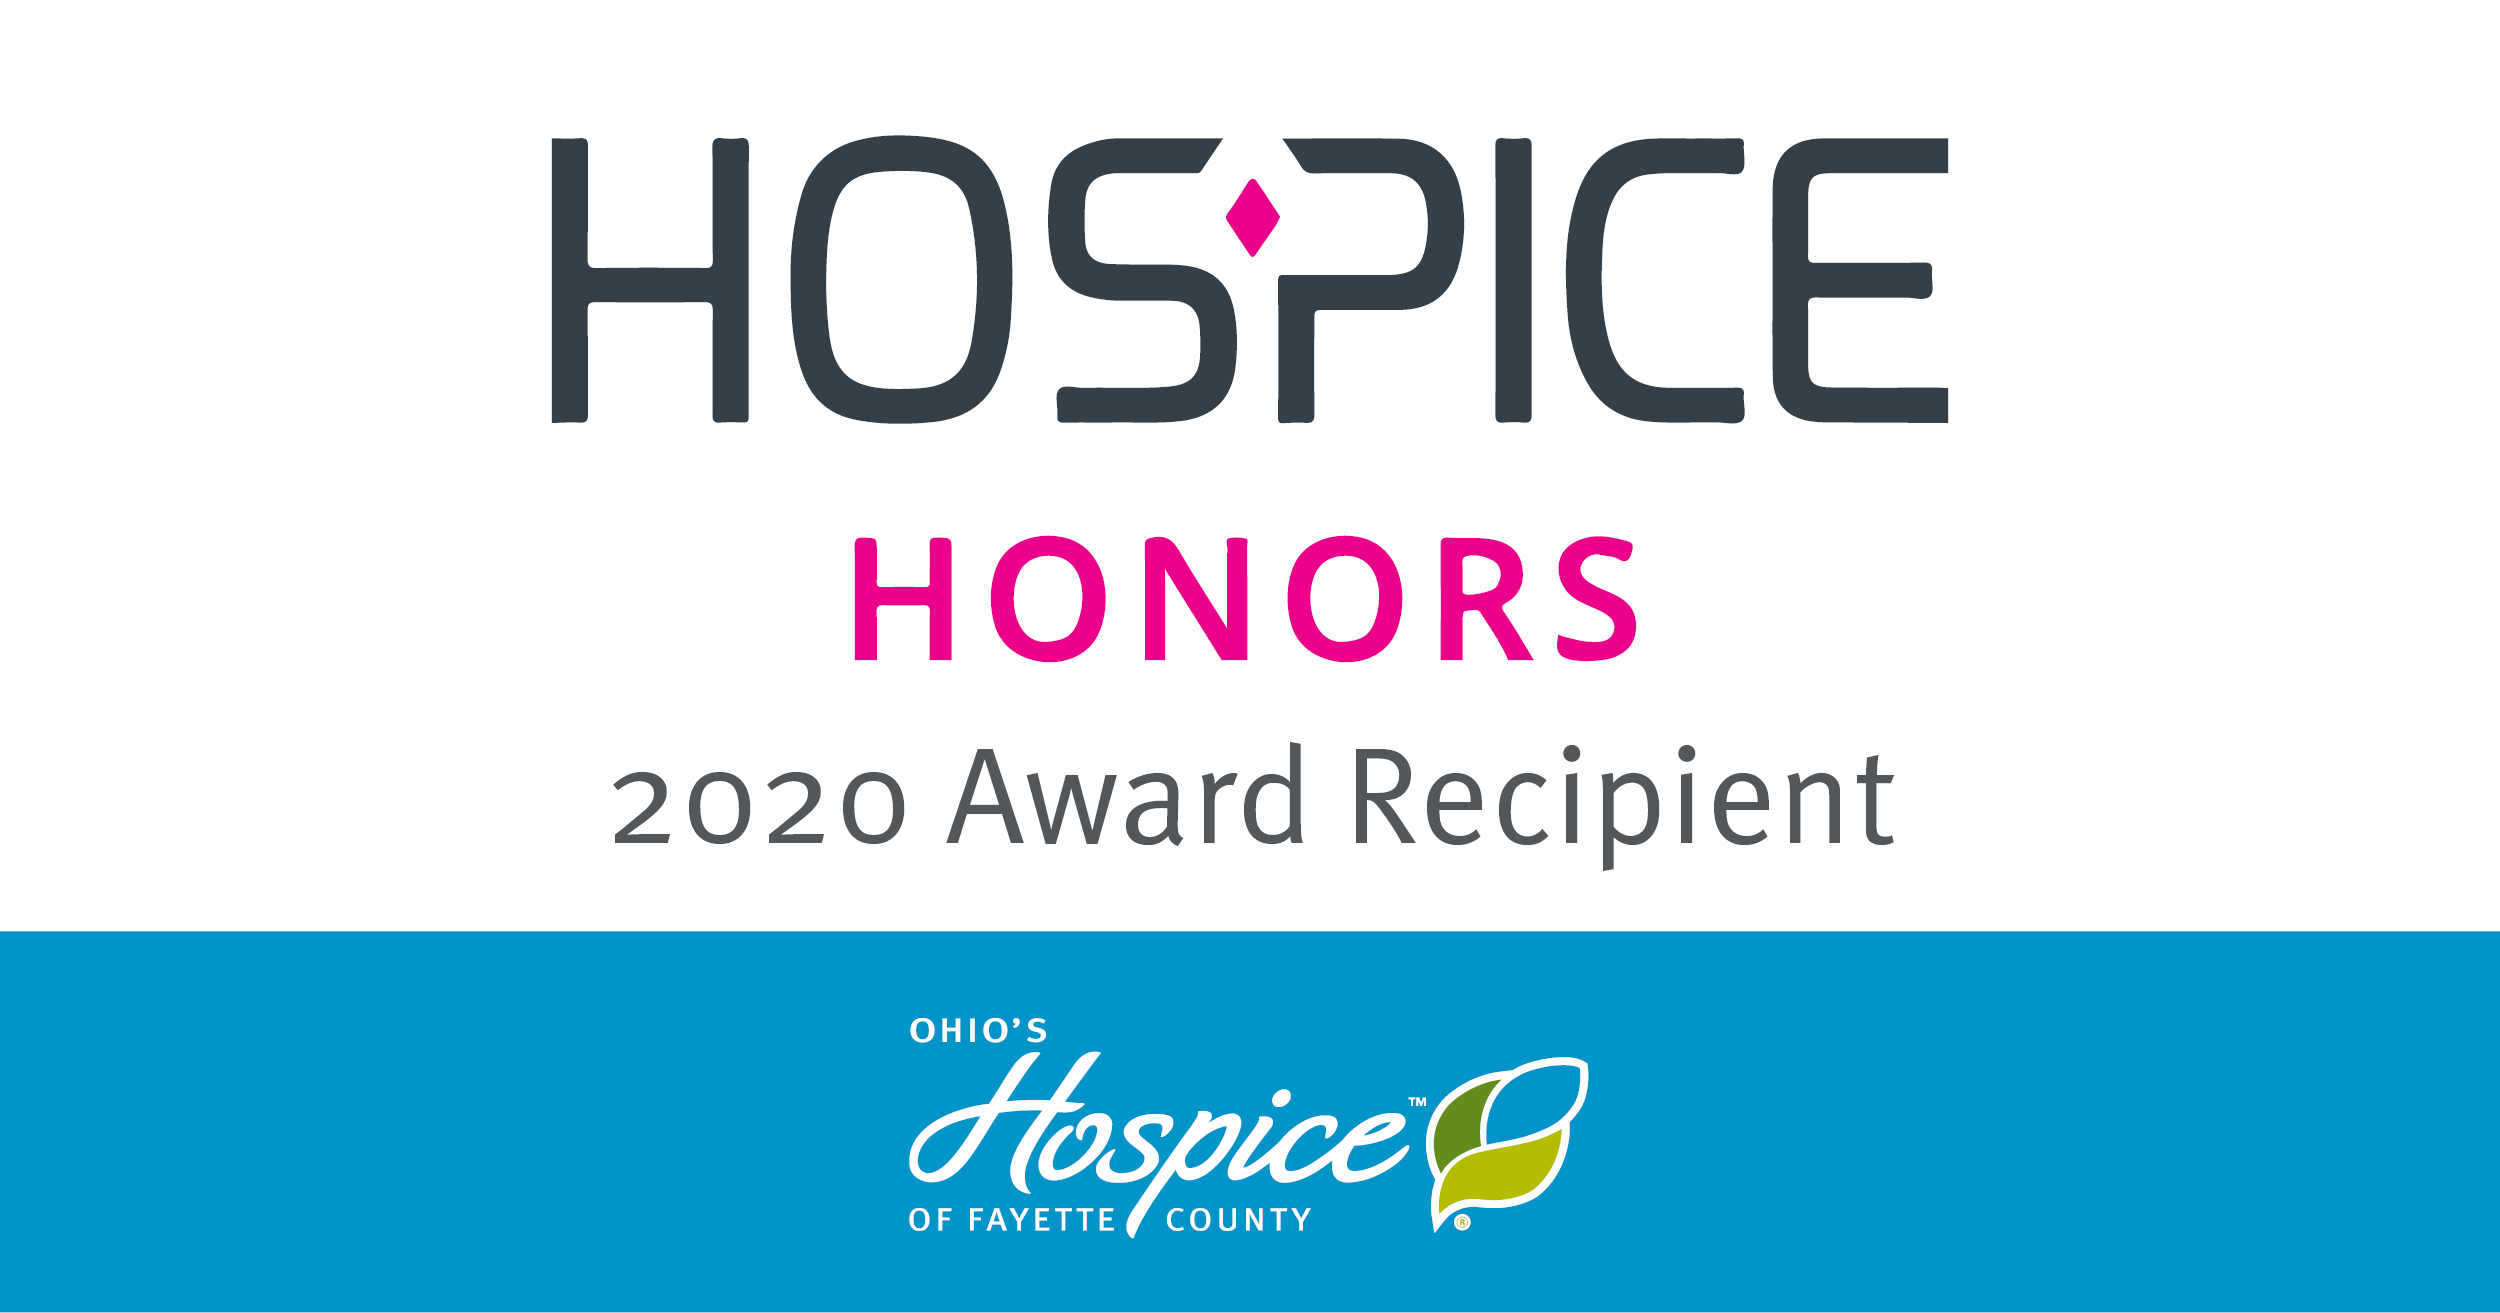 Ohio's Hospice Of Fayette County Named A 2020 Hospice Honors Recipient